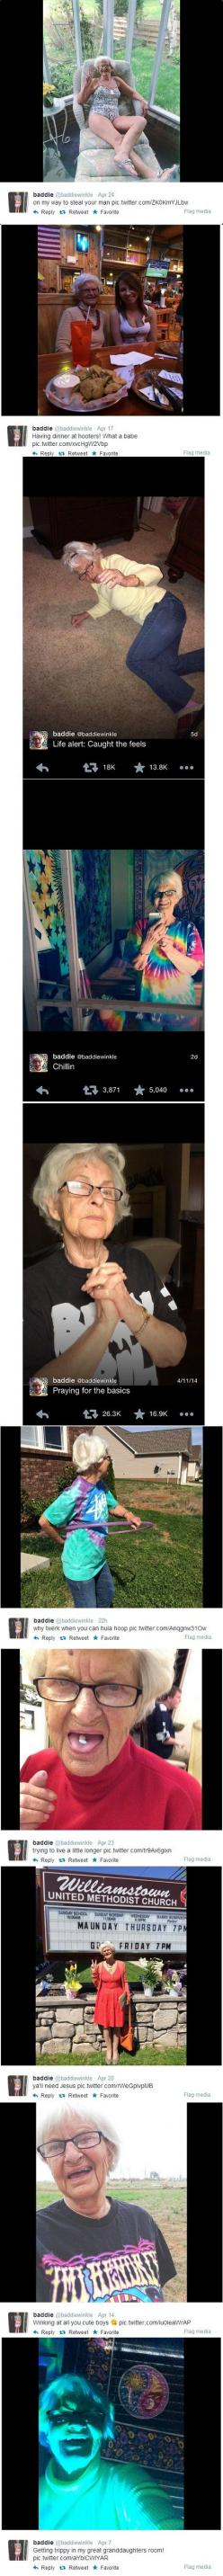 This is the best thing ever... never will I ever stop reblogging this: Giggle, Coolest Grandma, Funny Stuff, Life Goals, Modern Grandmas, Awesome Grandma, Old Friends Funny